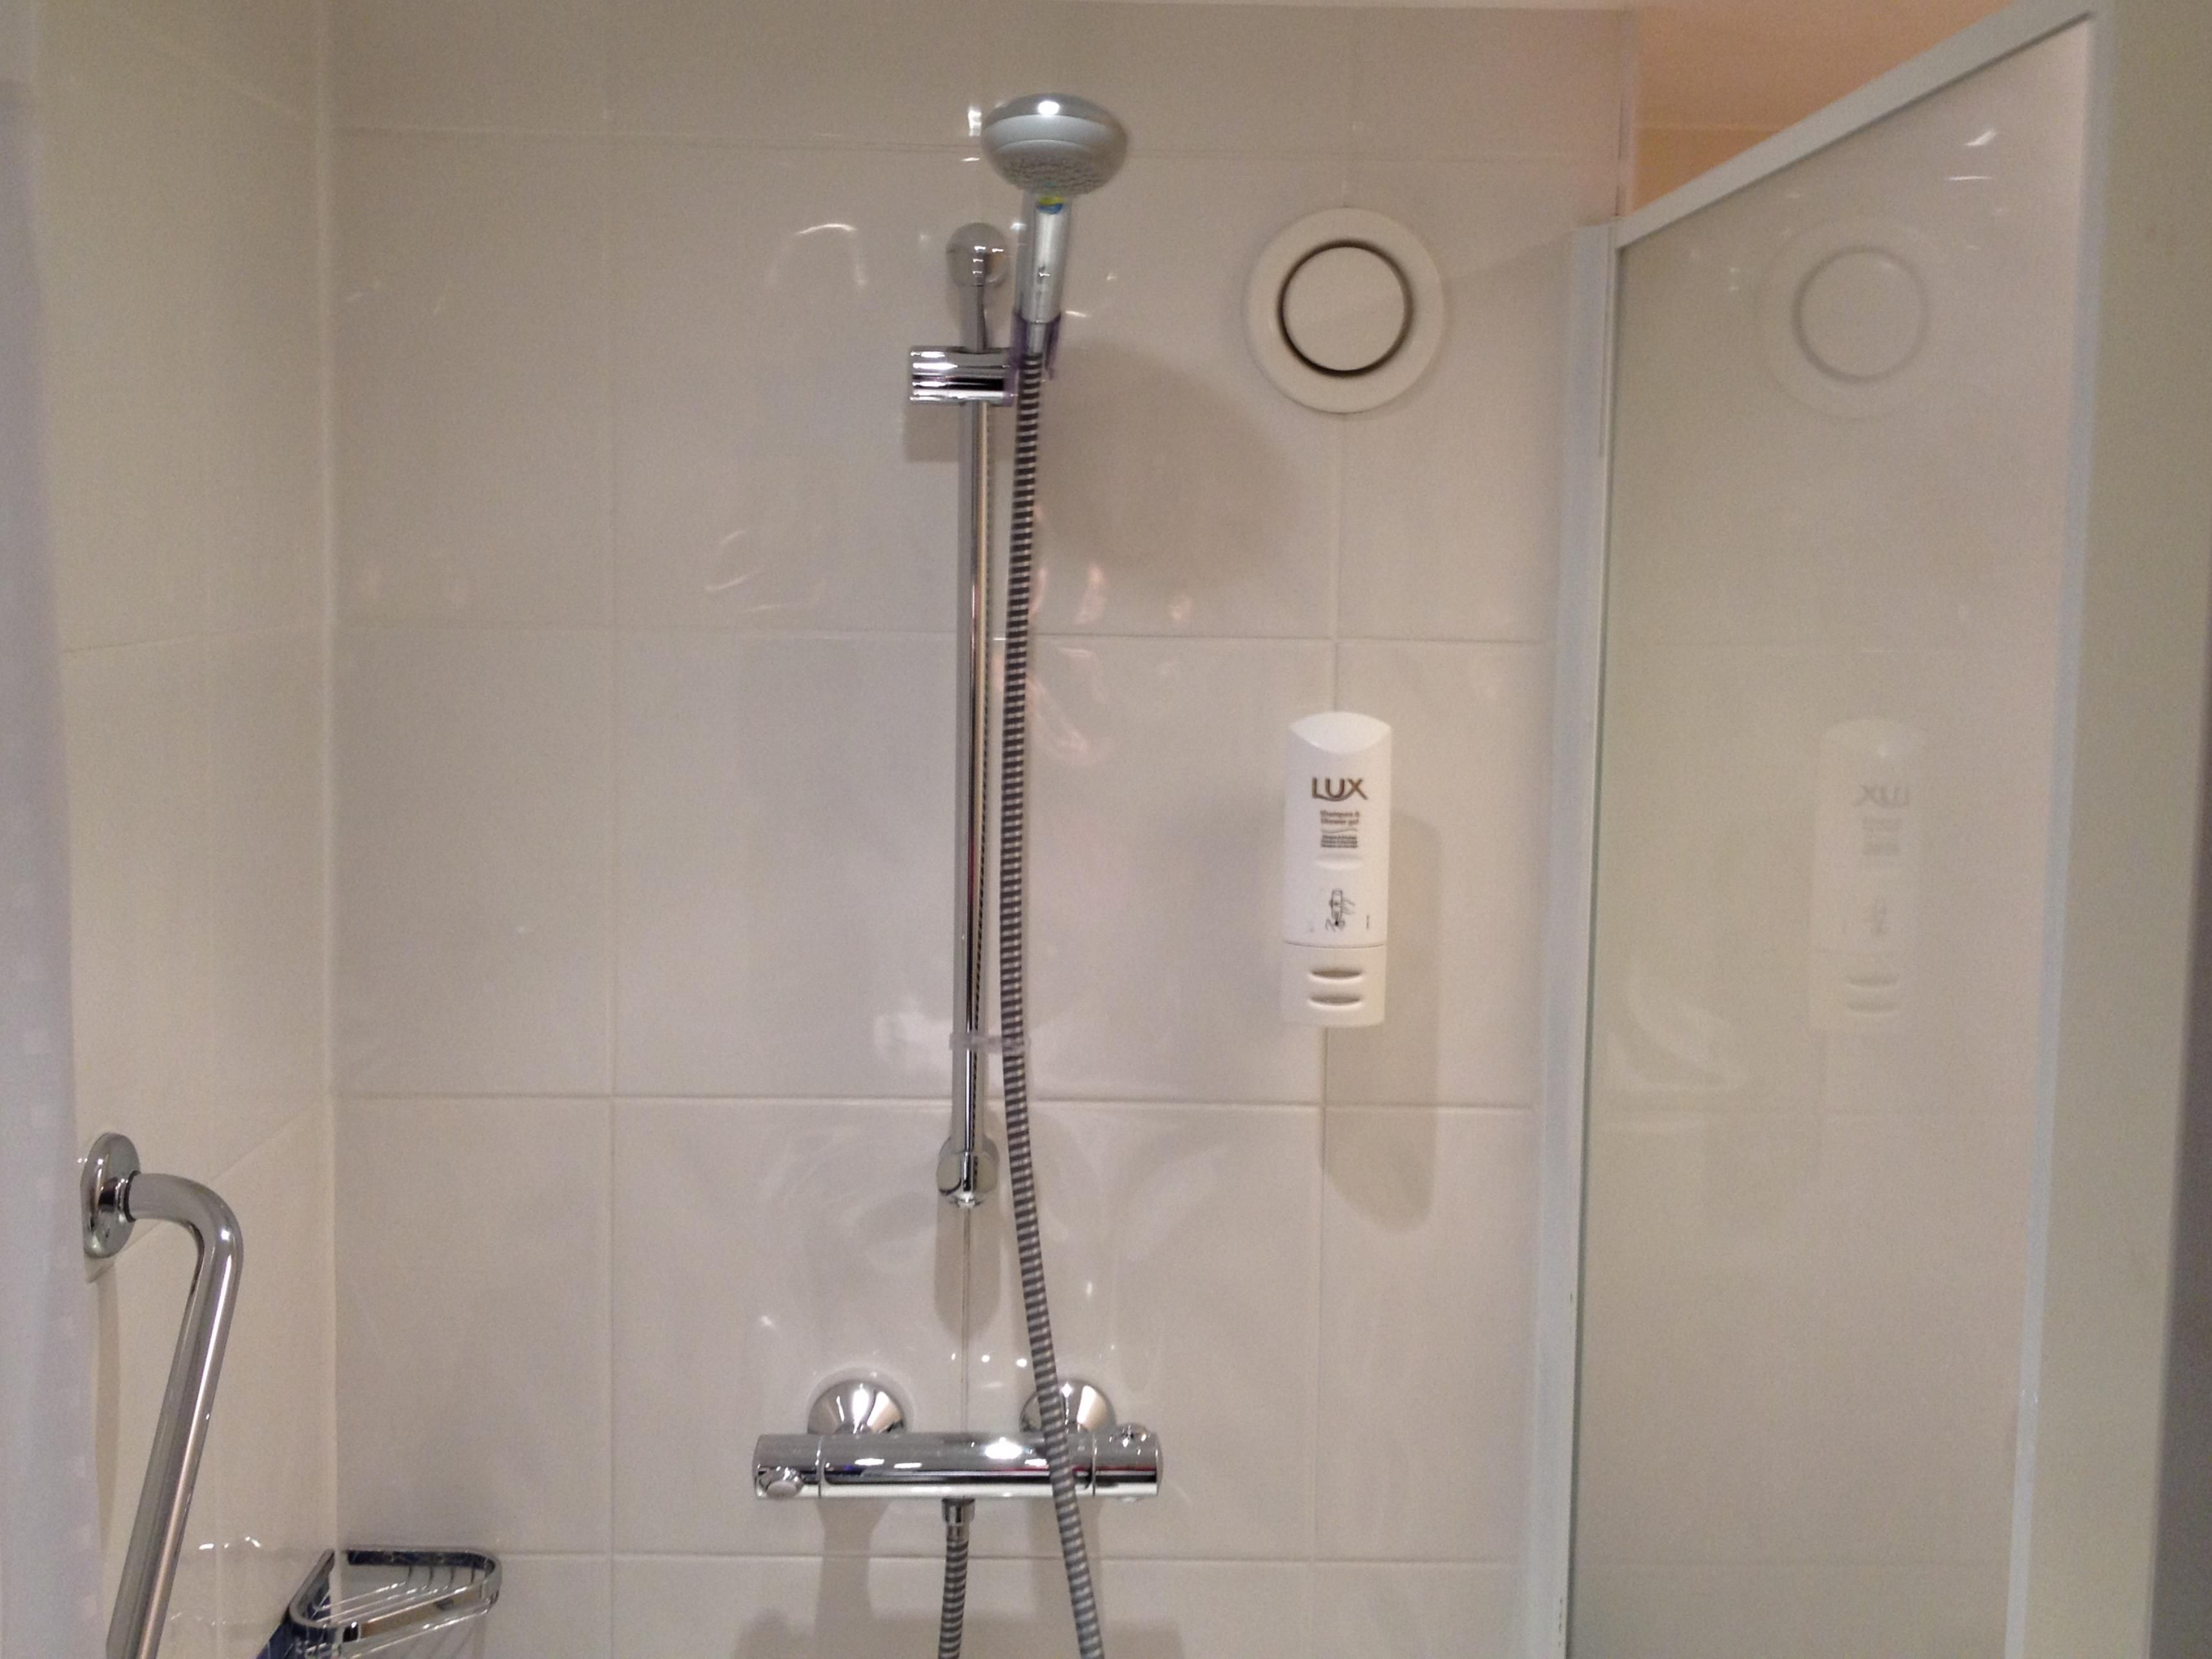 All standard guest rooms feature a shower